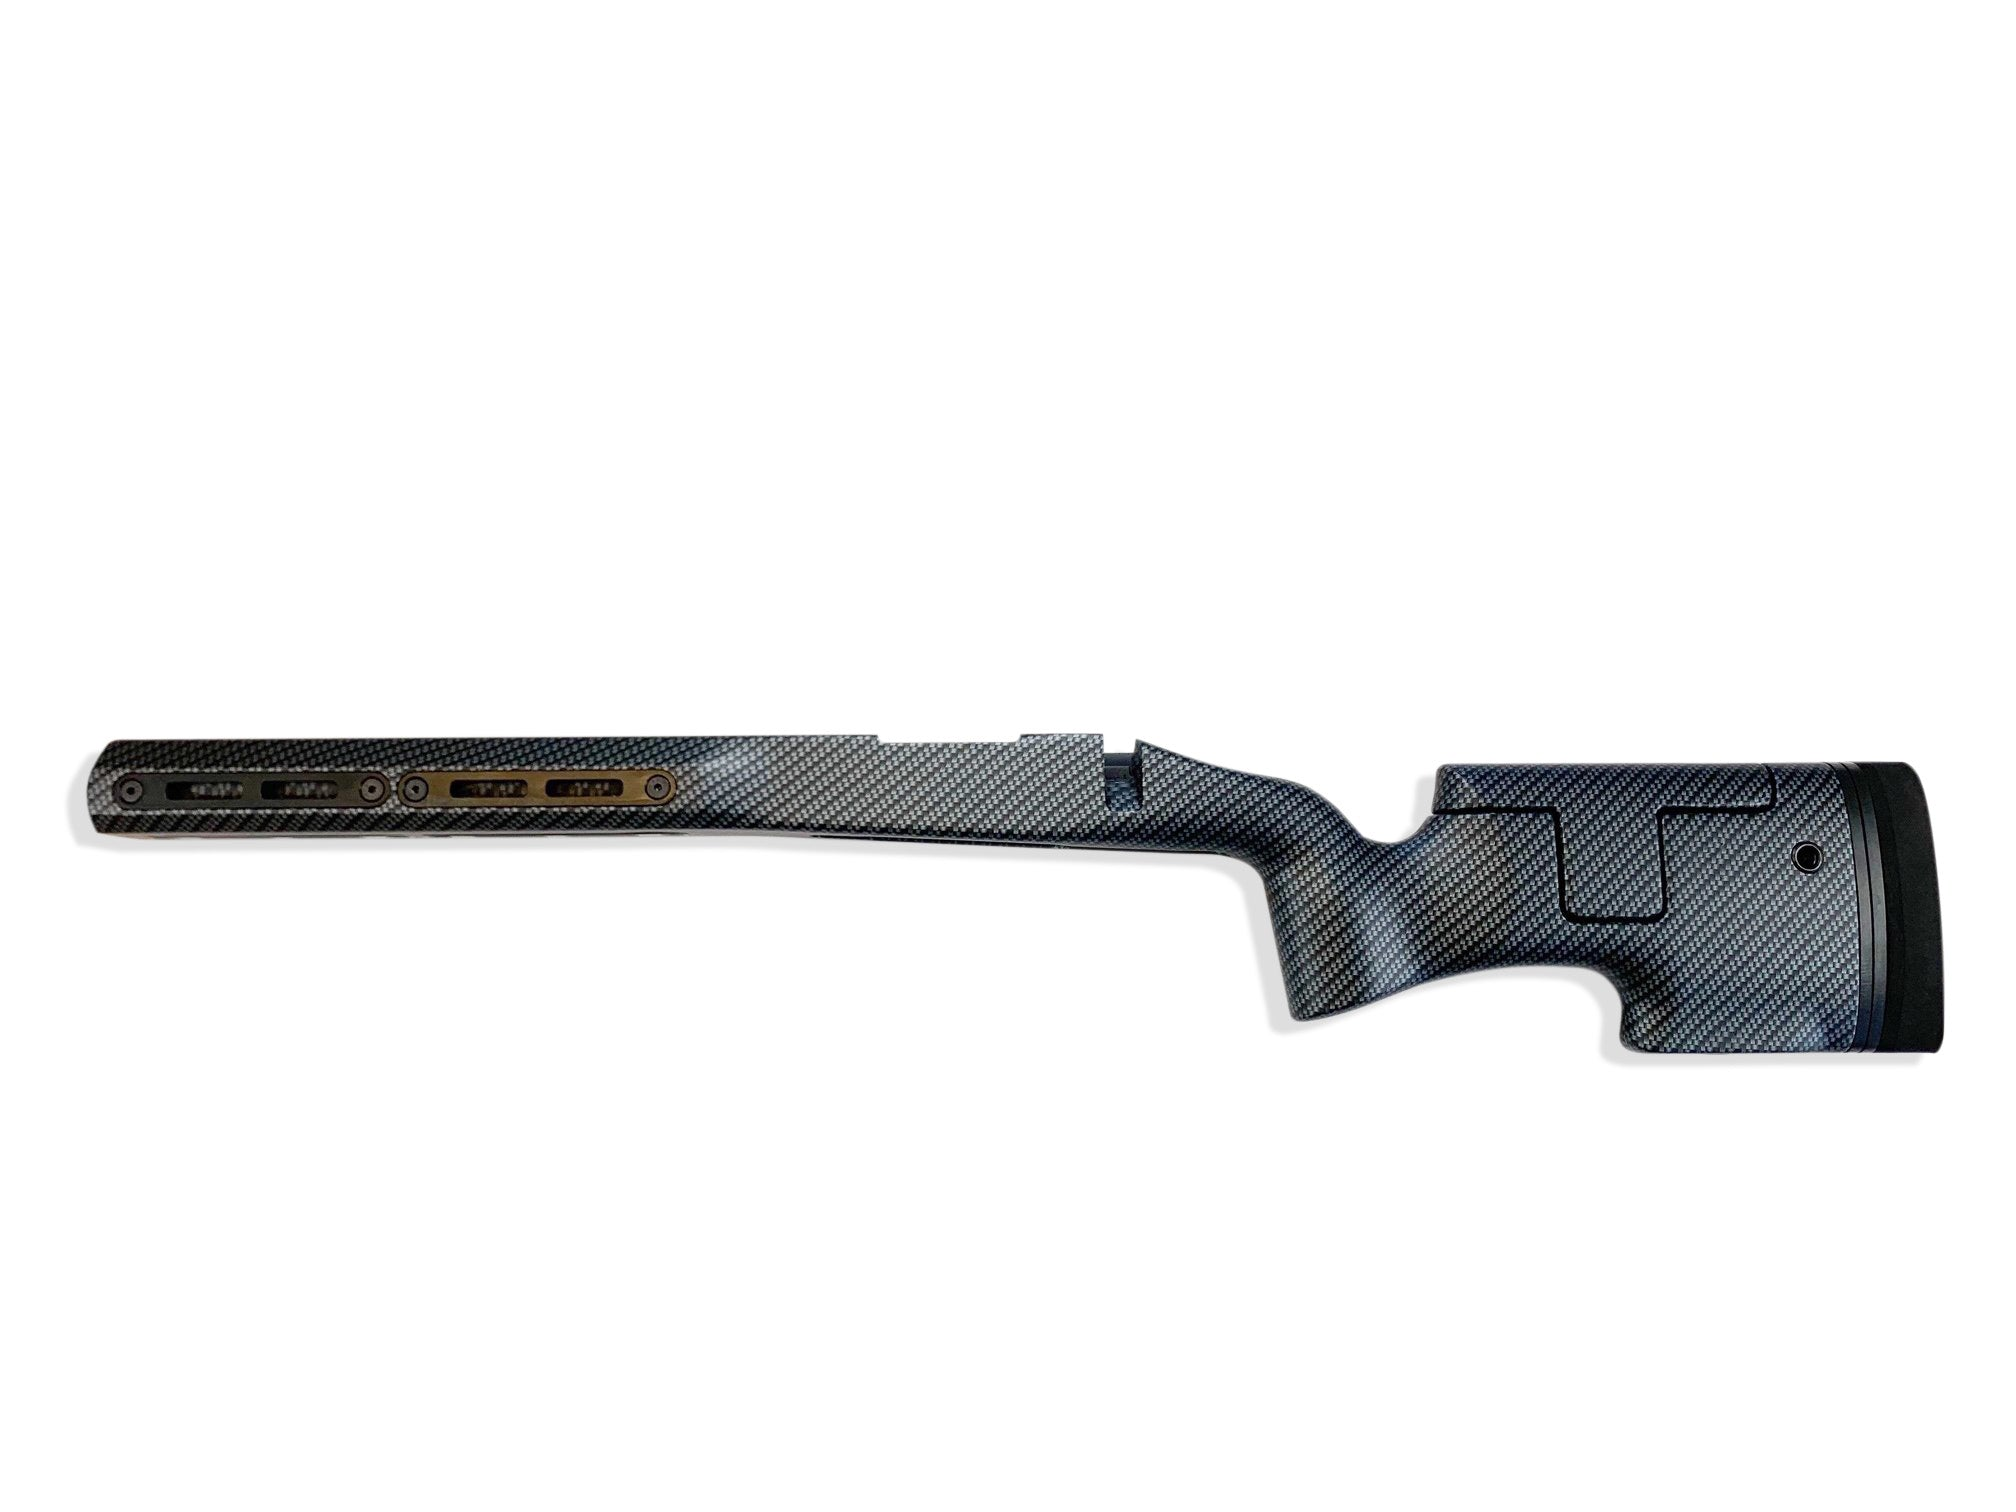 Ridgeback - LEFT HAND Remington 700 short action Carbon Fiber Hydro Dip